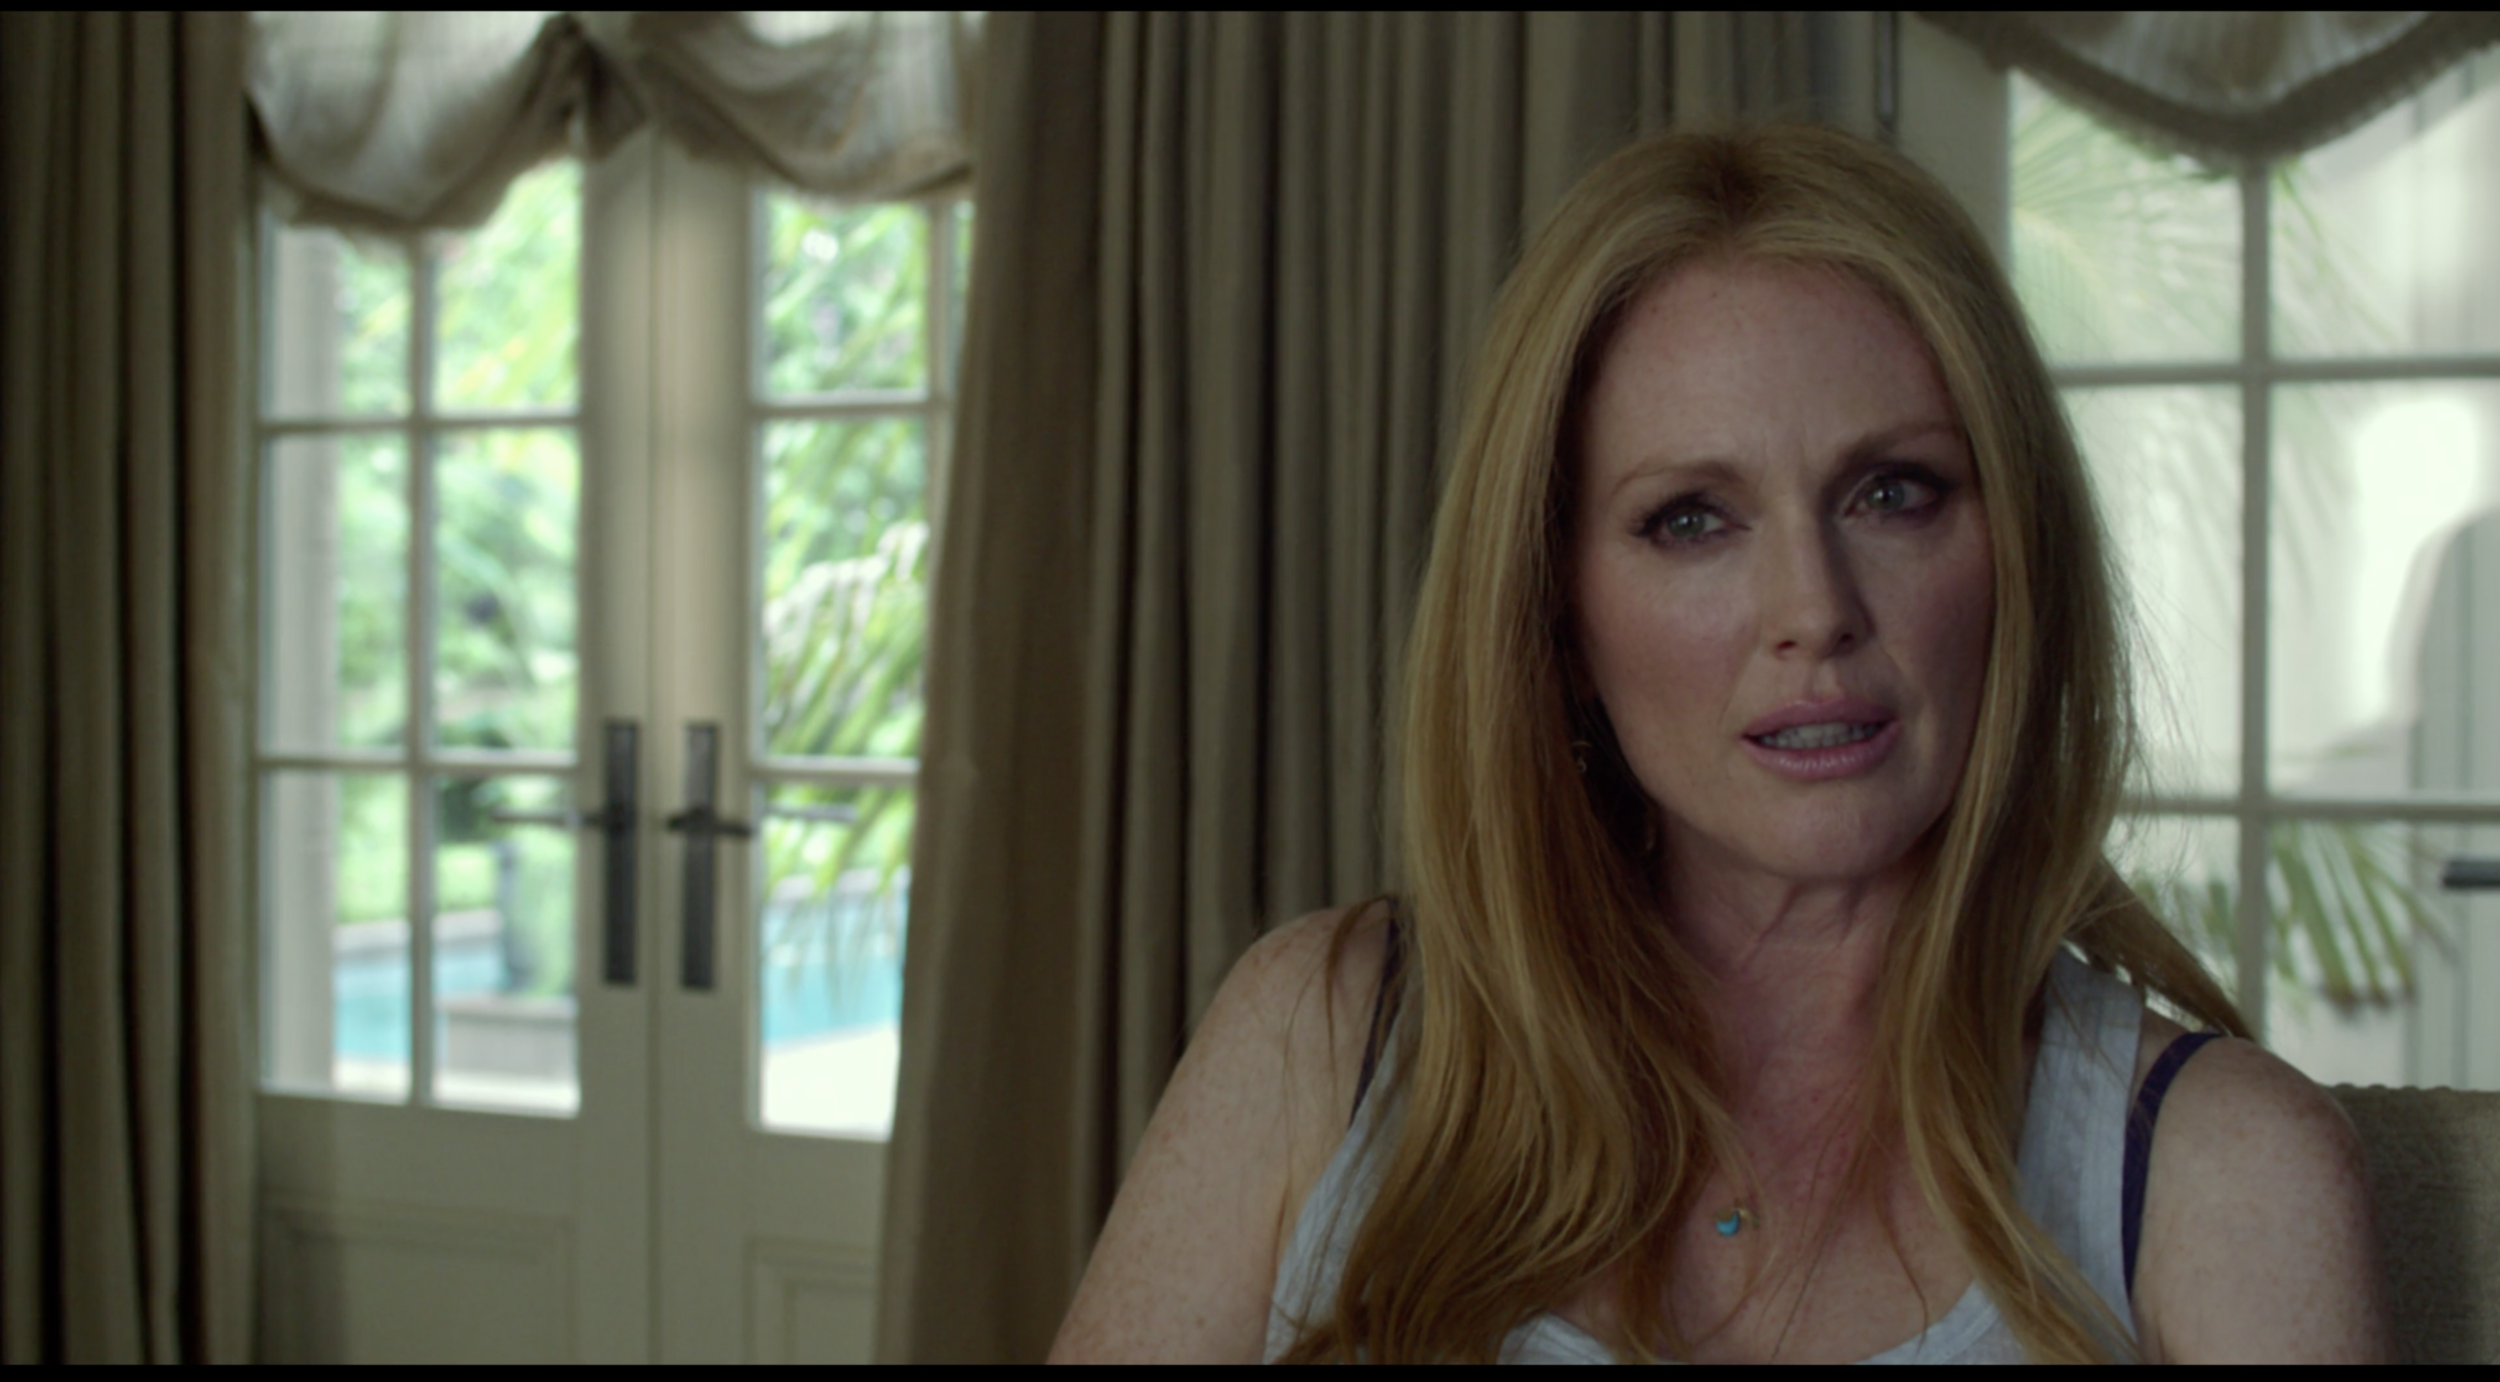 For contrast, Julianne Moore as Havana in  Maps to the Stars .